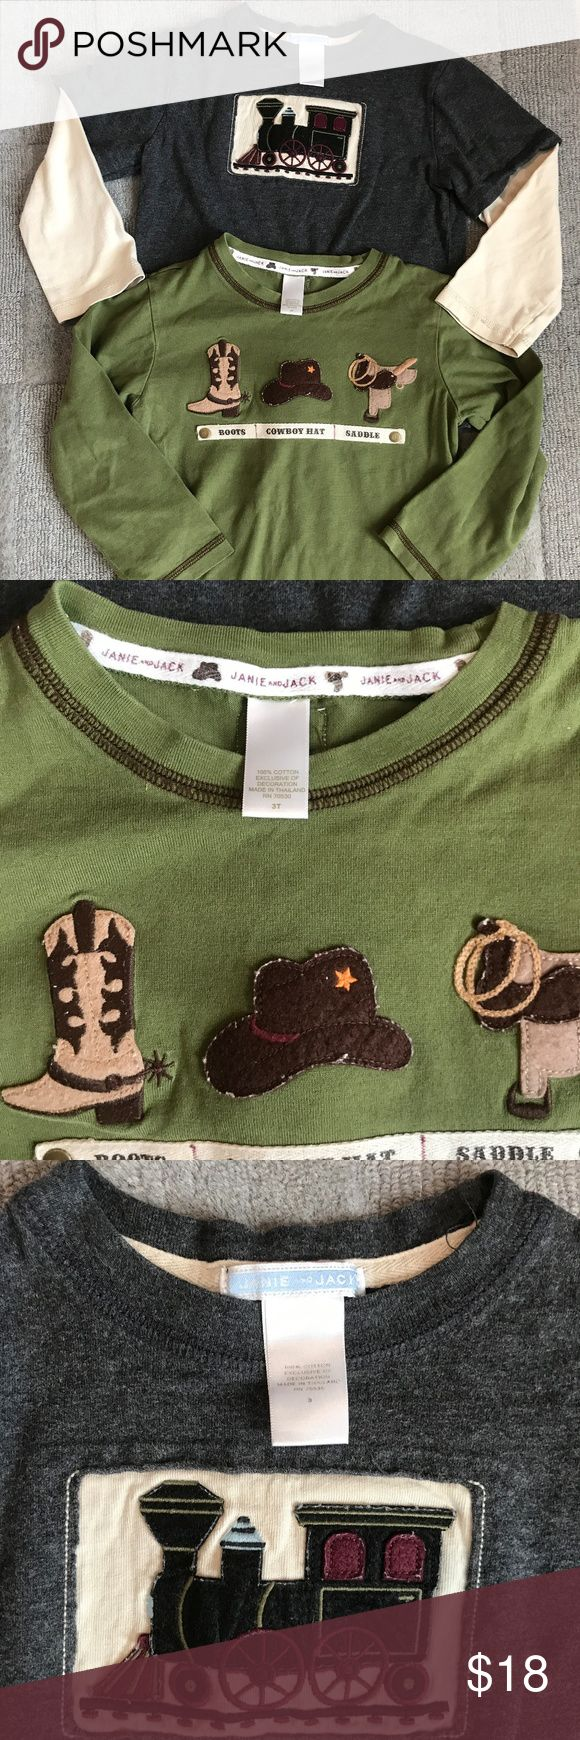 Janie and Jack cowboy and train shirts 2 Janie and Jack long sleeve shirts. So cute!! One with a train and mock short sleeves. The other with the cutest cowboy boot, hat and saddle. No stains or holes, EUC. Priced to sell. Bundle to save even more! Janie and Jack Shirts & Tops Tees - Long Sleeve